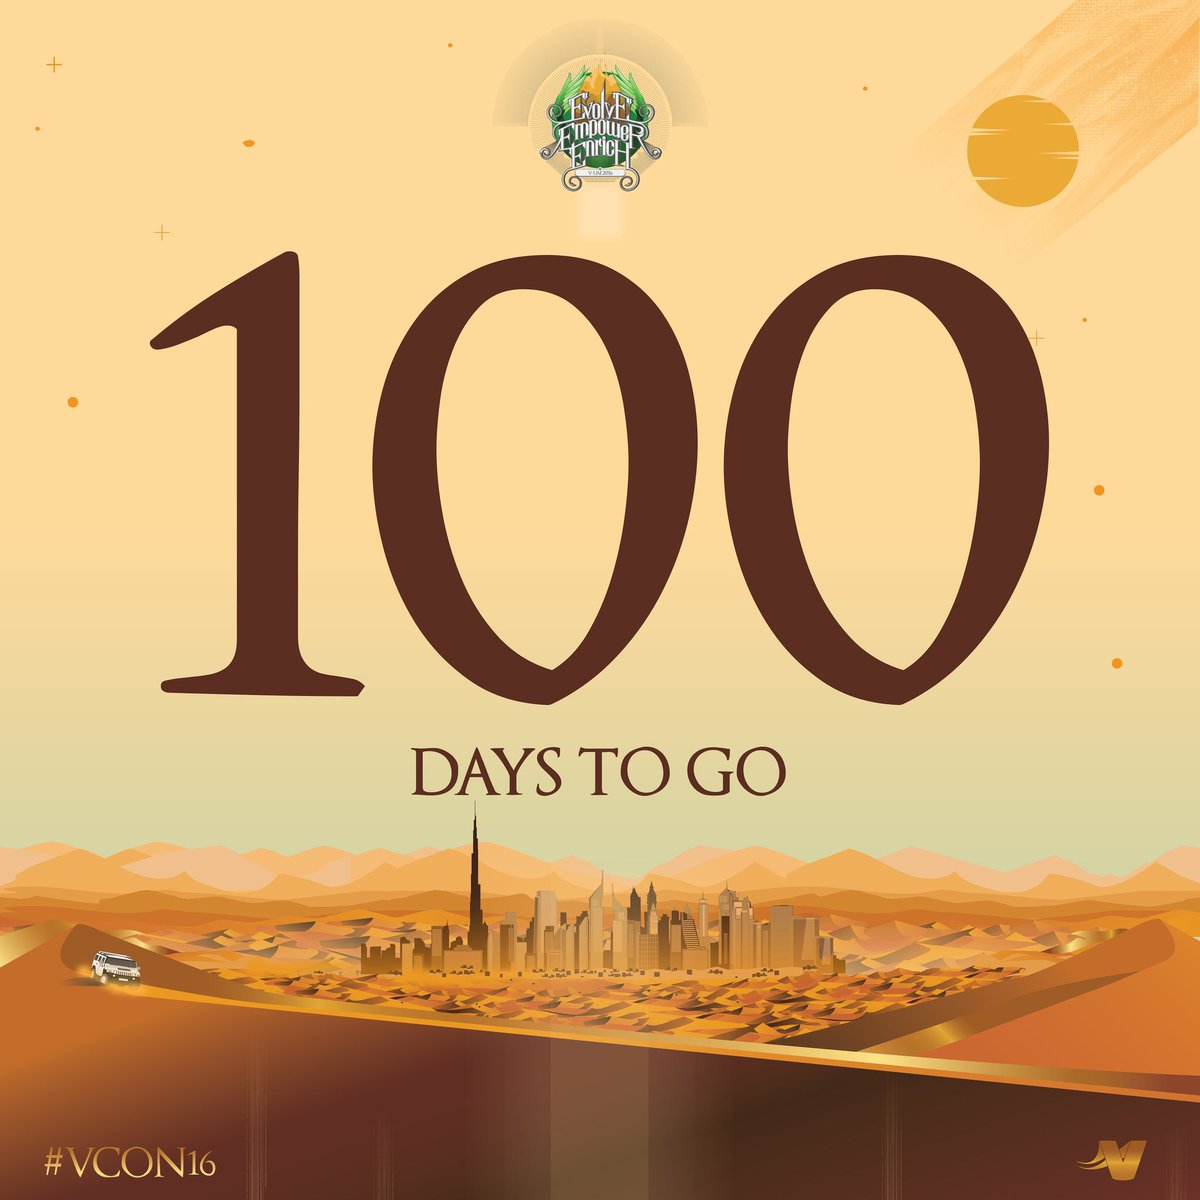 Get ready to experience the magic of #VCON16 in Dubai this coming 20 to 24 September 2016 at @HamdanSC!!! https://t.co/6ZtaeNlxZA